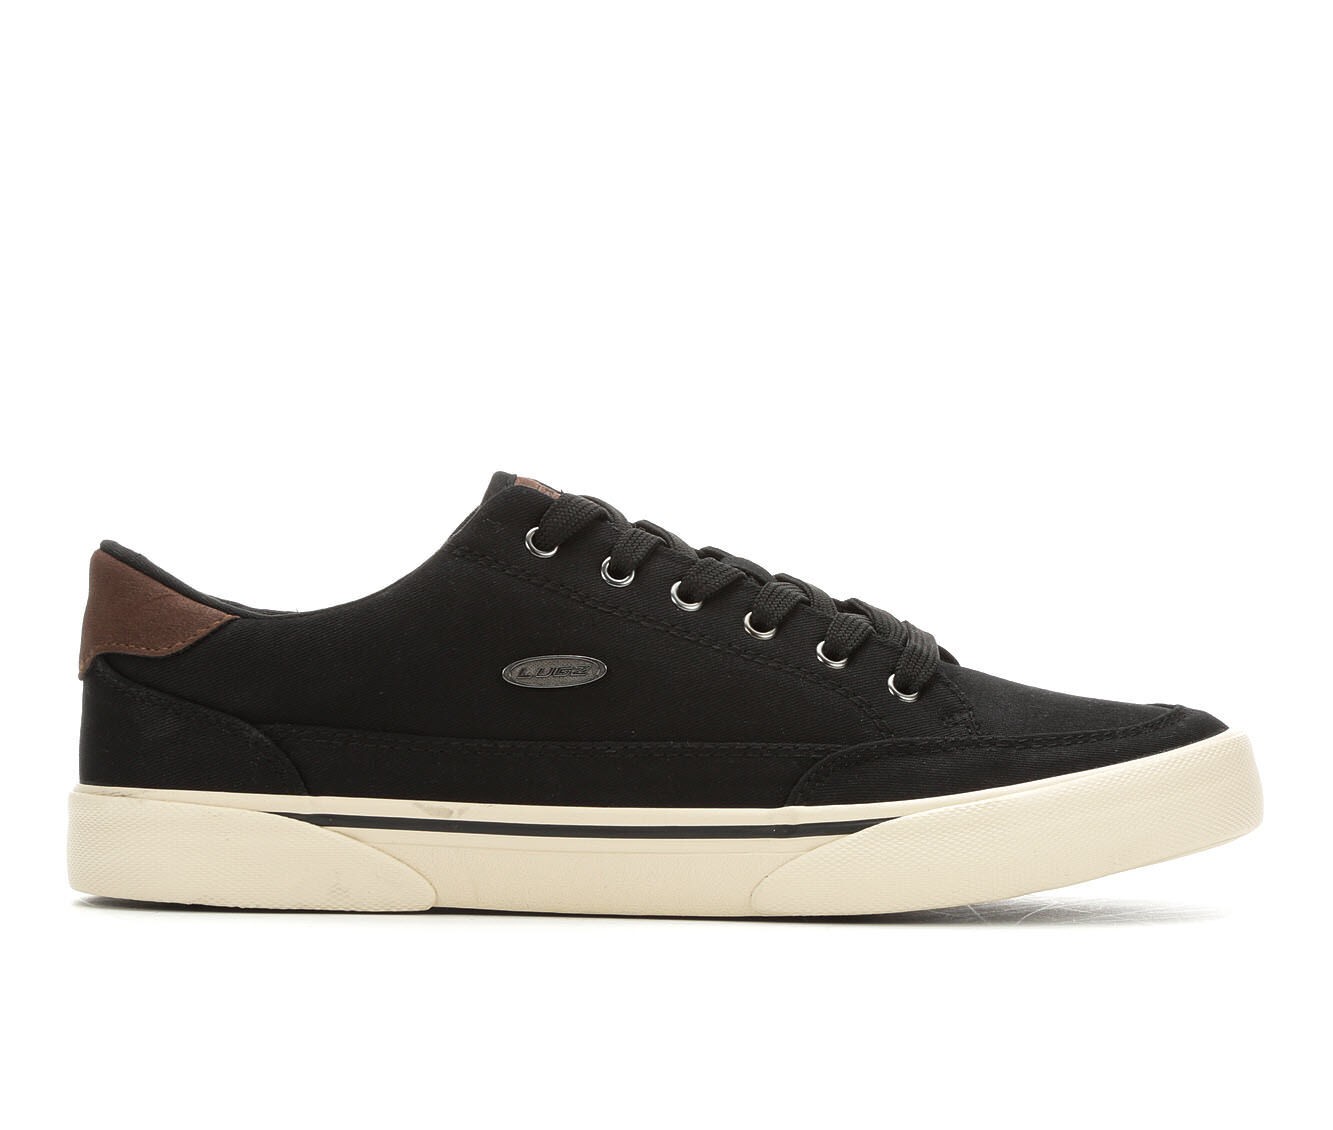 new series Men's Lugz Stockwell Casual Sneakers Black/Chocolate